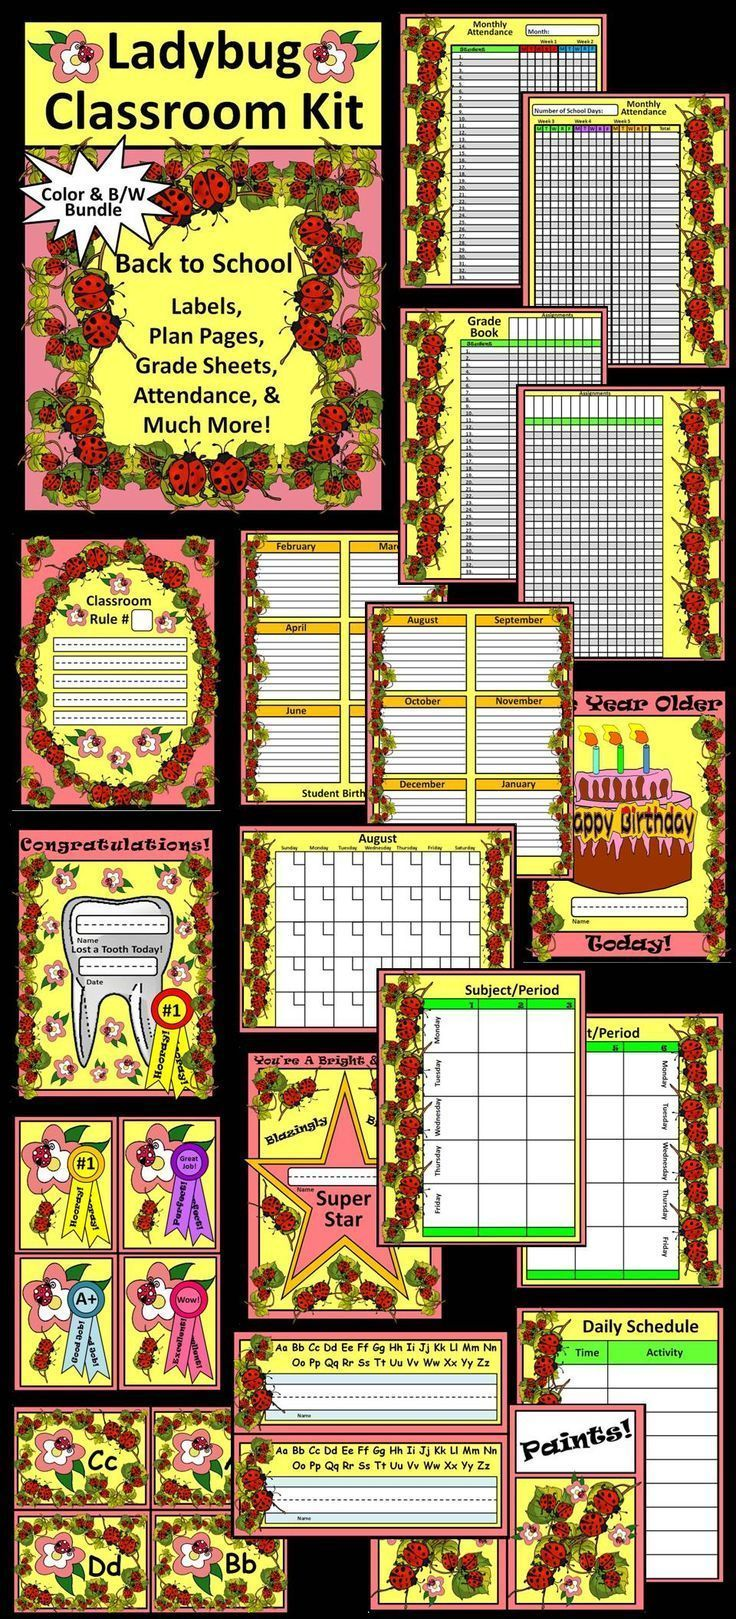 This colorful Back to School kit containing ladybug classroom management items.  Contents include: * Student Nameplates * Rules Template * Supply Labels * Super Student Template * Birthday Cake Template * Lost a Tooth Template * Medal Templates * Alphabet